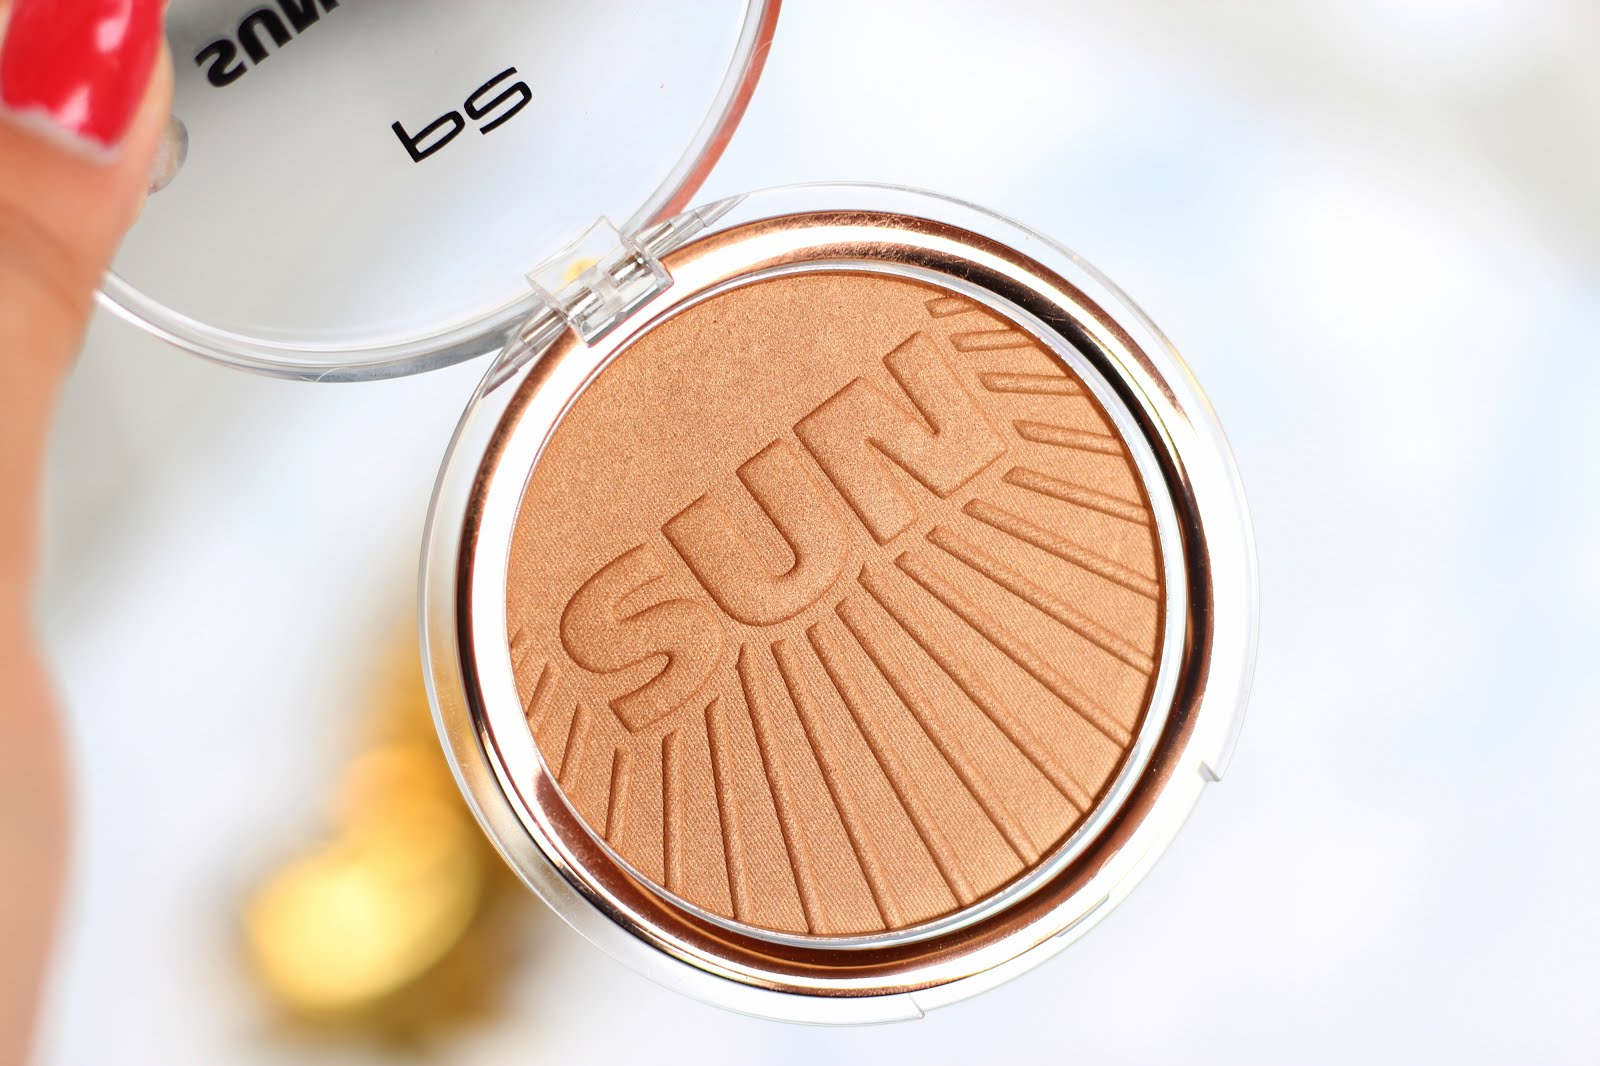 p2 bronzer, p2 sunshine finish bronzer, p2 bronzer review